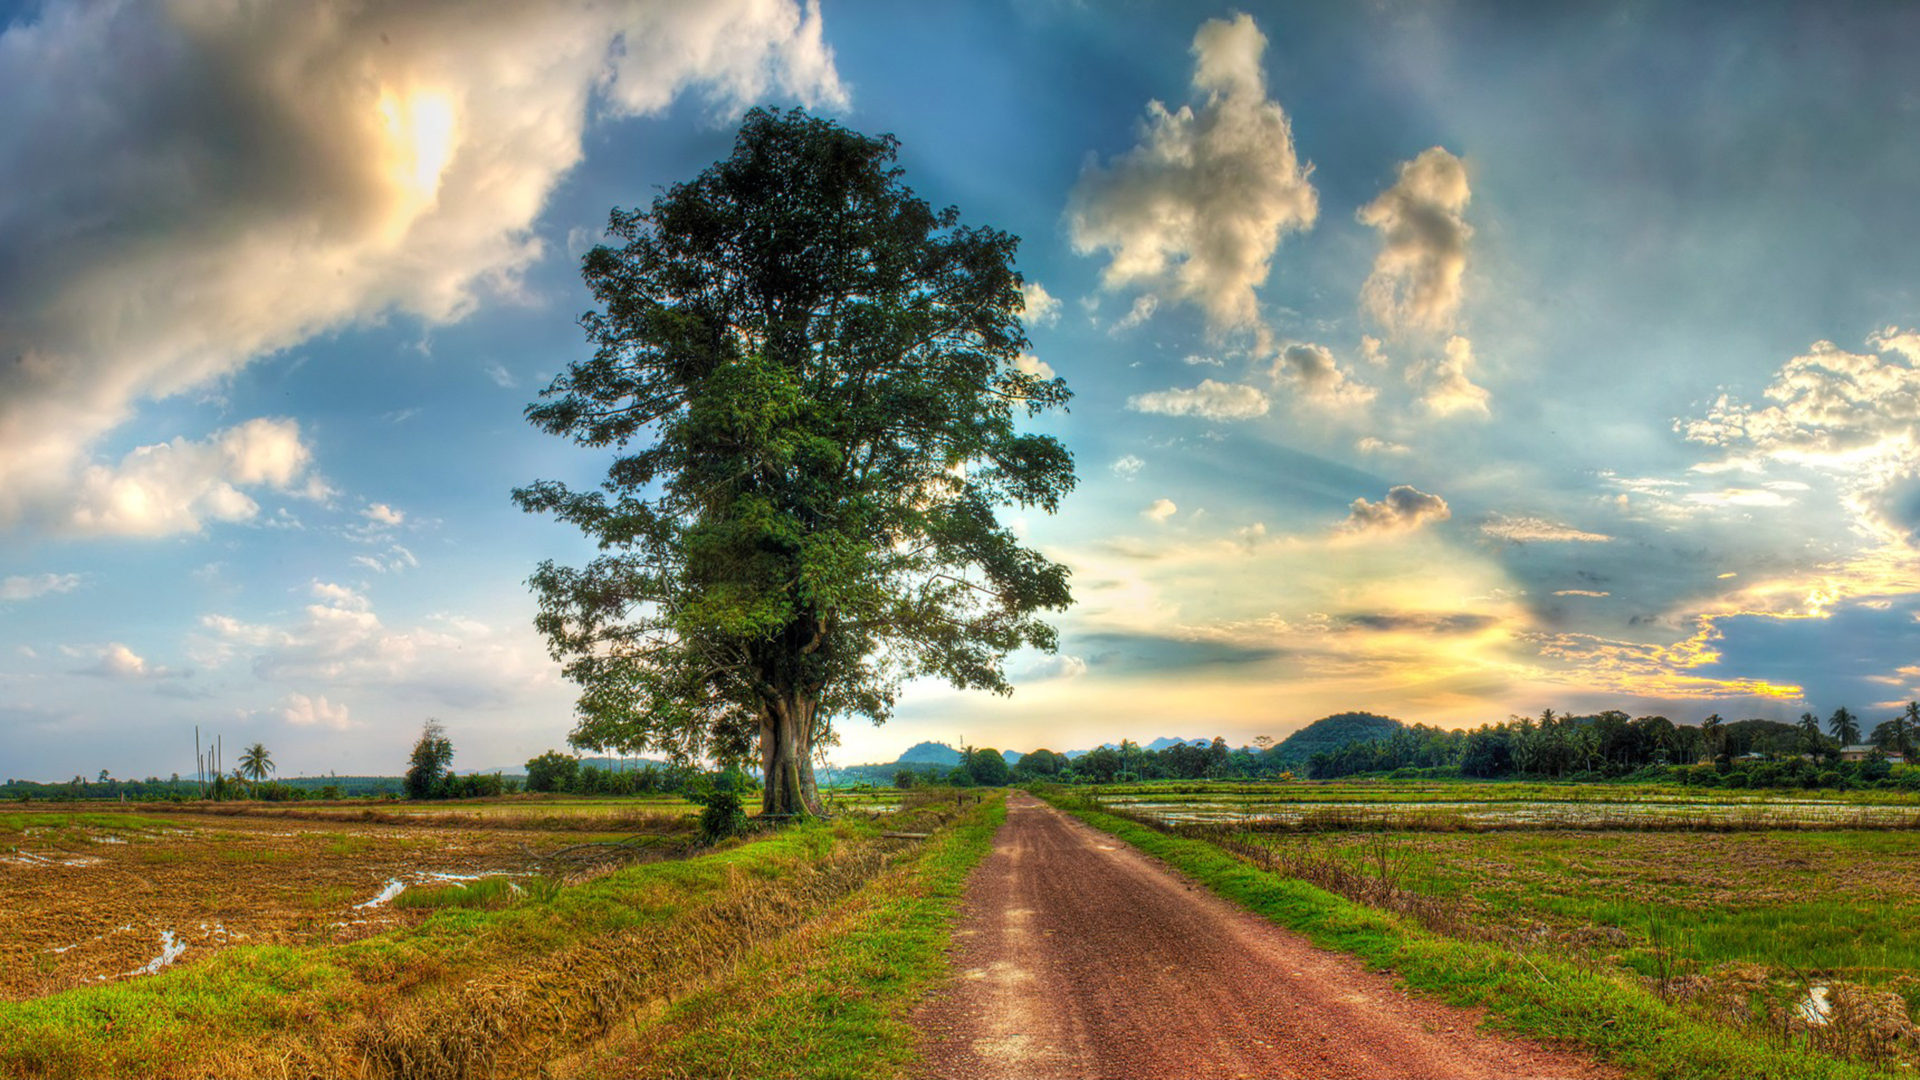 Free Iphone Wallpaper Fall Country Road Field Lonely Tree Grass White Sky Cloud